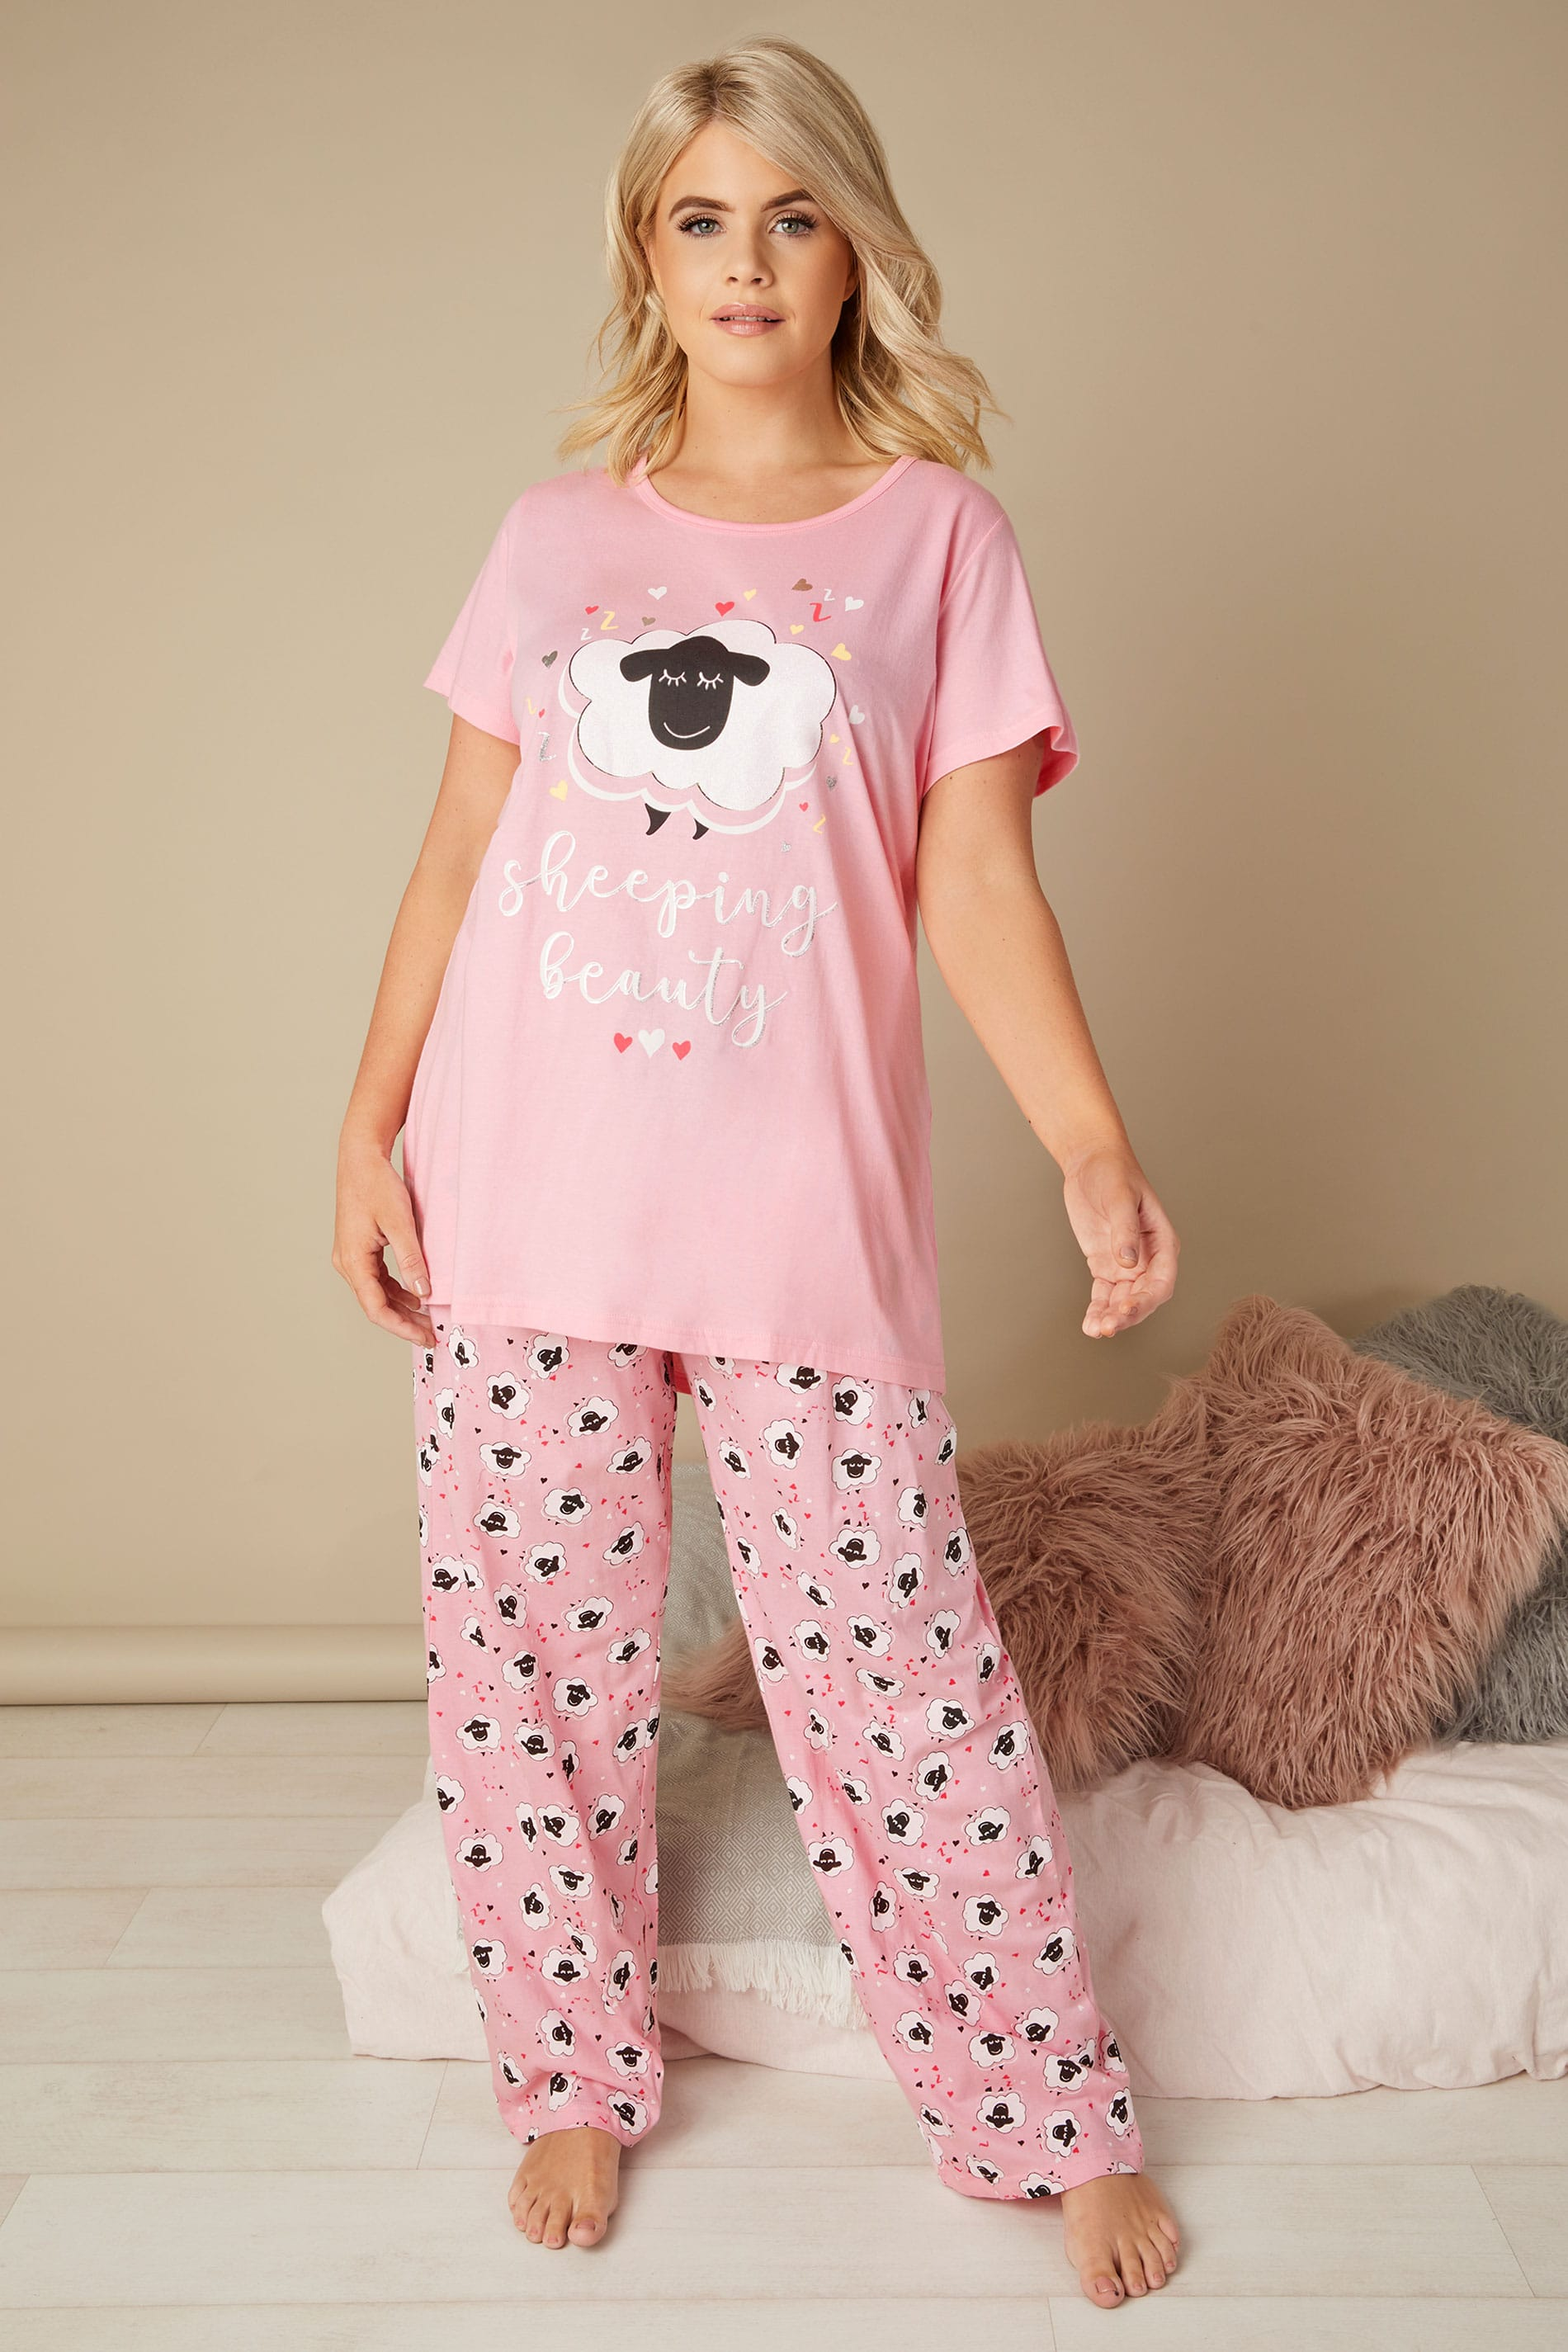 ensemble pyjama rose slogan sheeping beauty taille 44 64. Black Bedroom Furniture Sets. Home Design Ideas